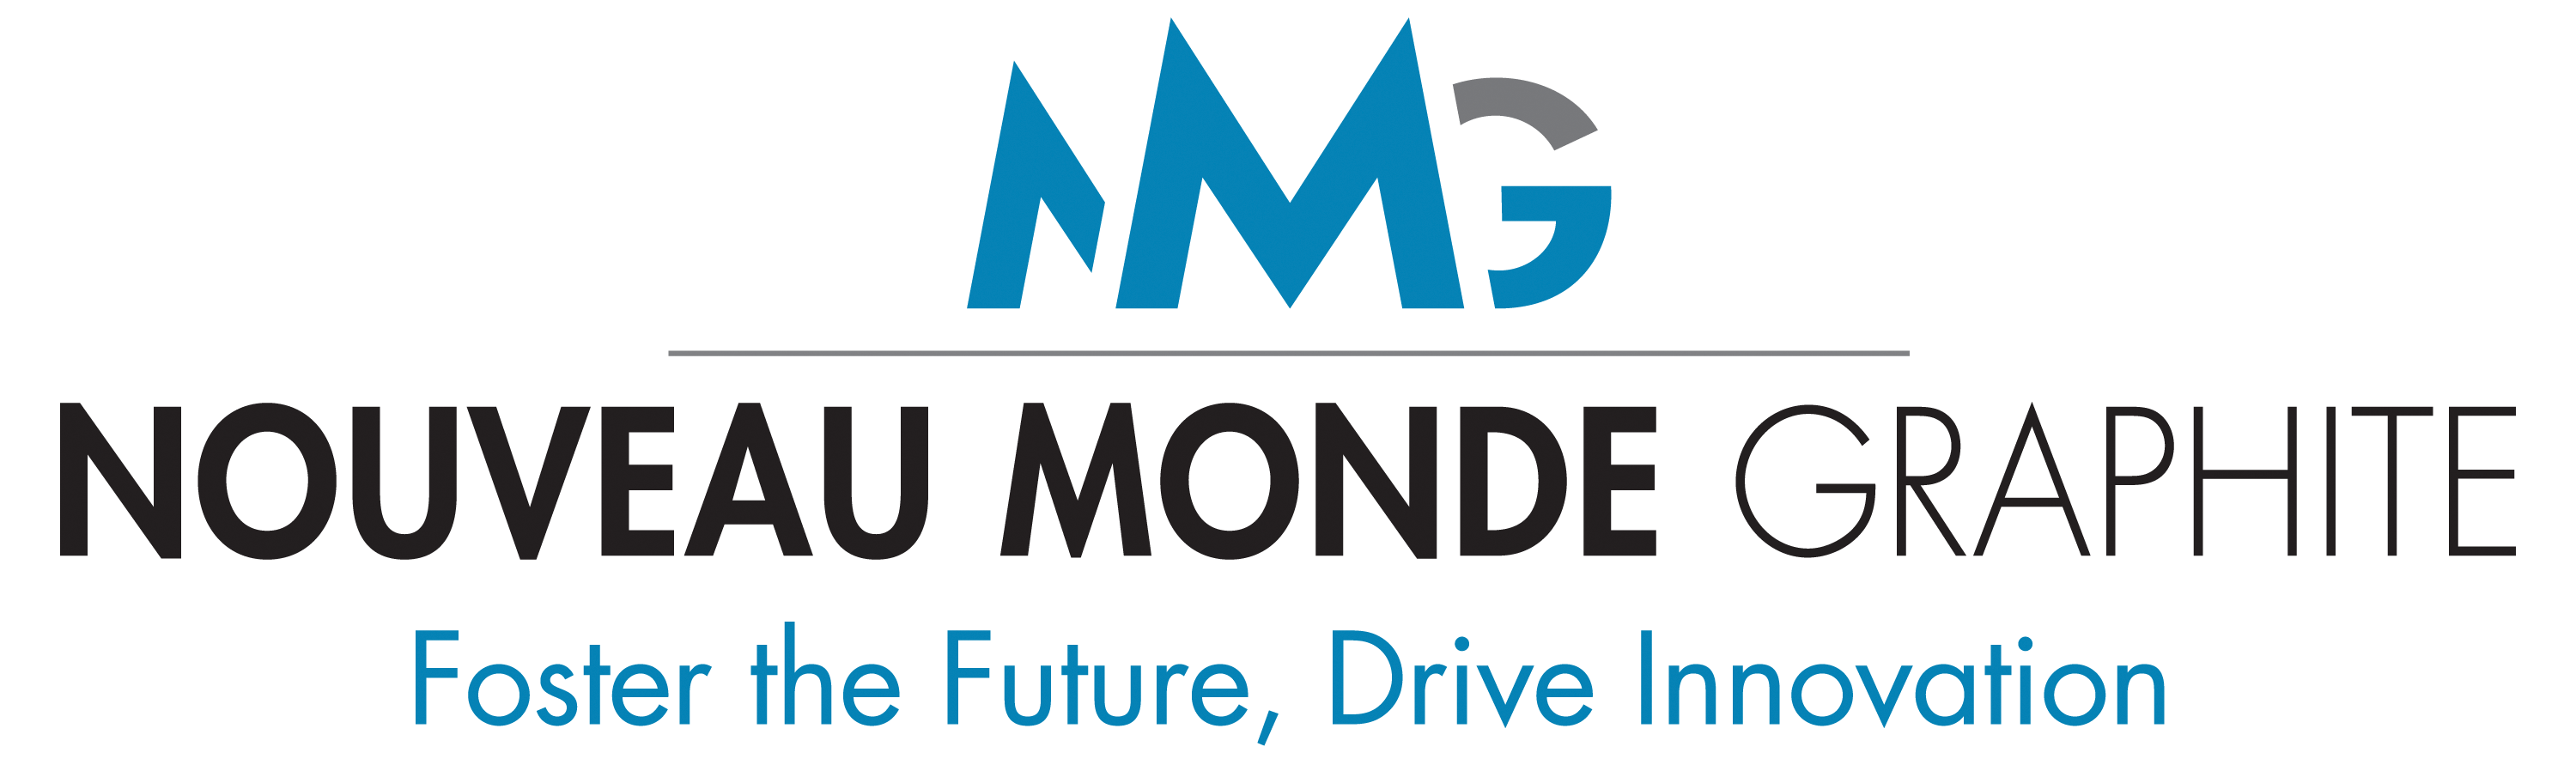 Nouveau Monde Advances Its Electrification With Mandate for the Connection to Hydro-Québec's Network